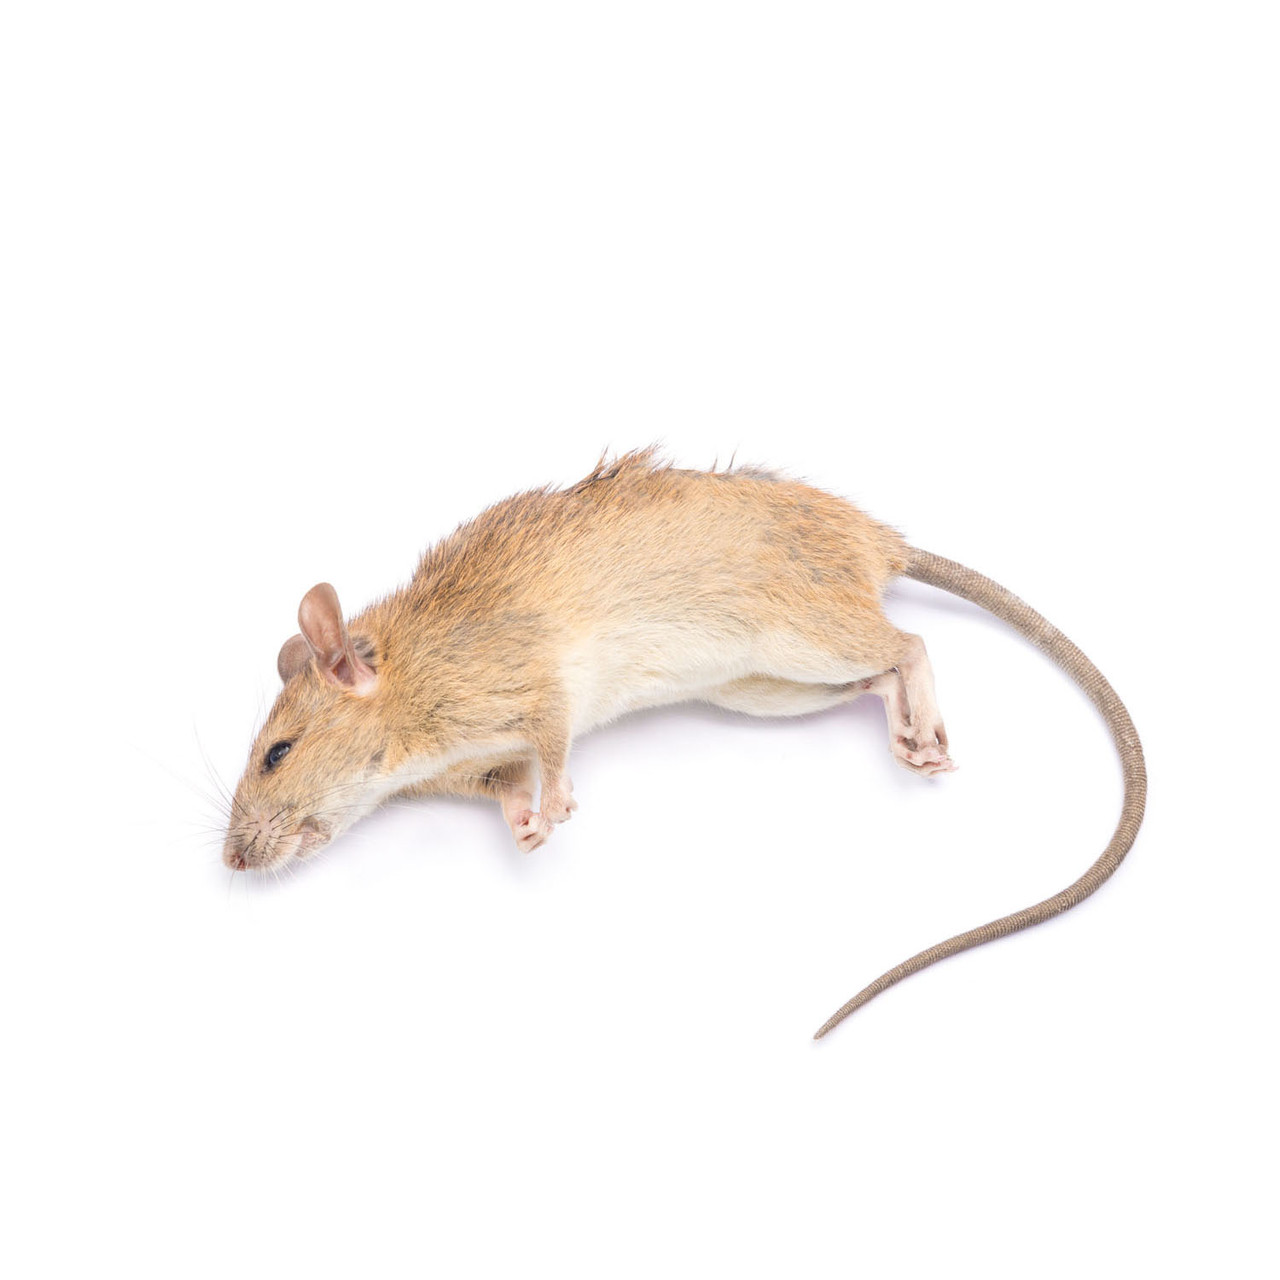 PM1.032 - Rat, female, preserved, Perfect Solution